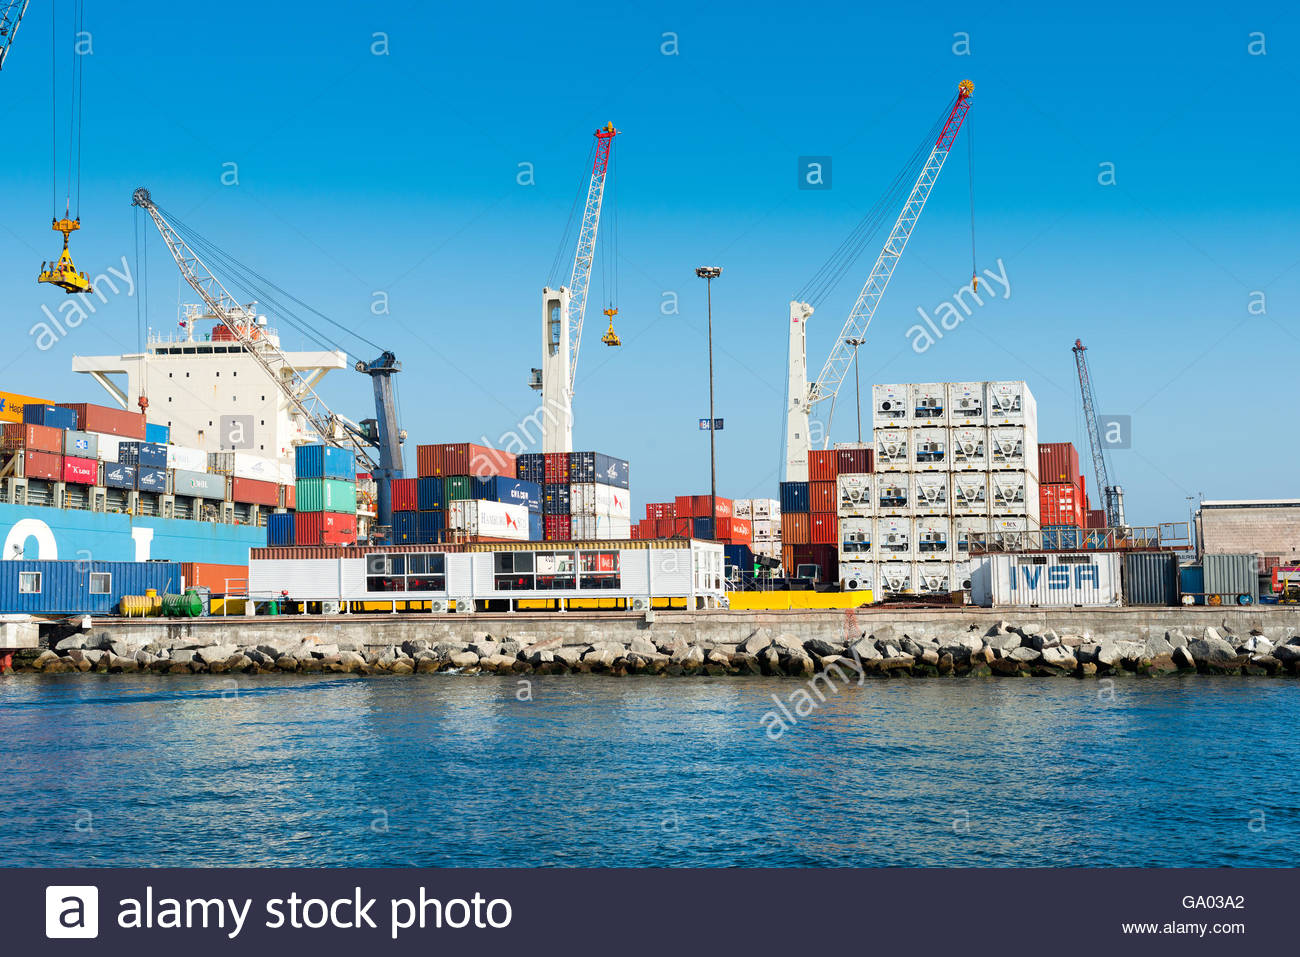 Big cargo ship at international port of Iquique in northern Chile - Stock Image